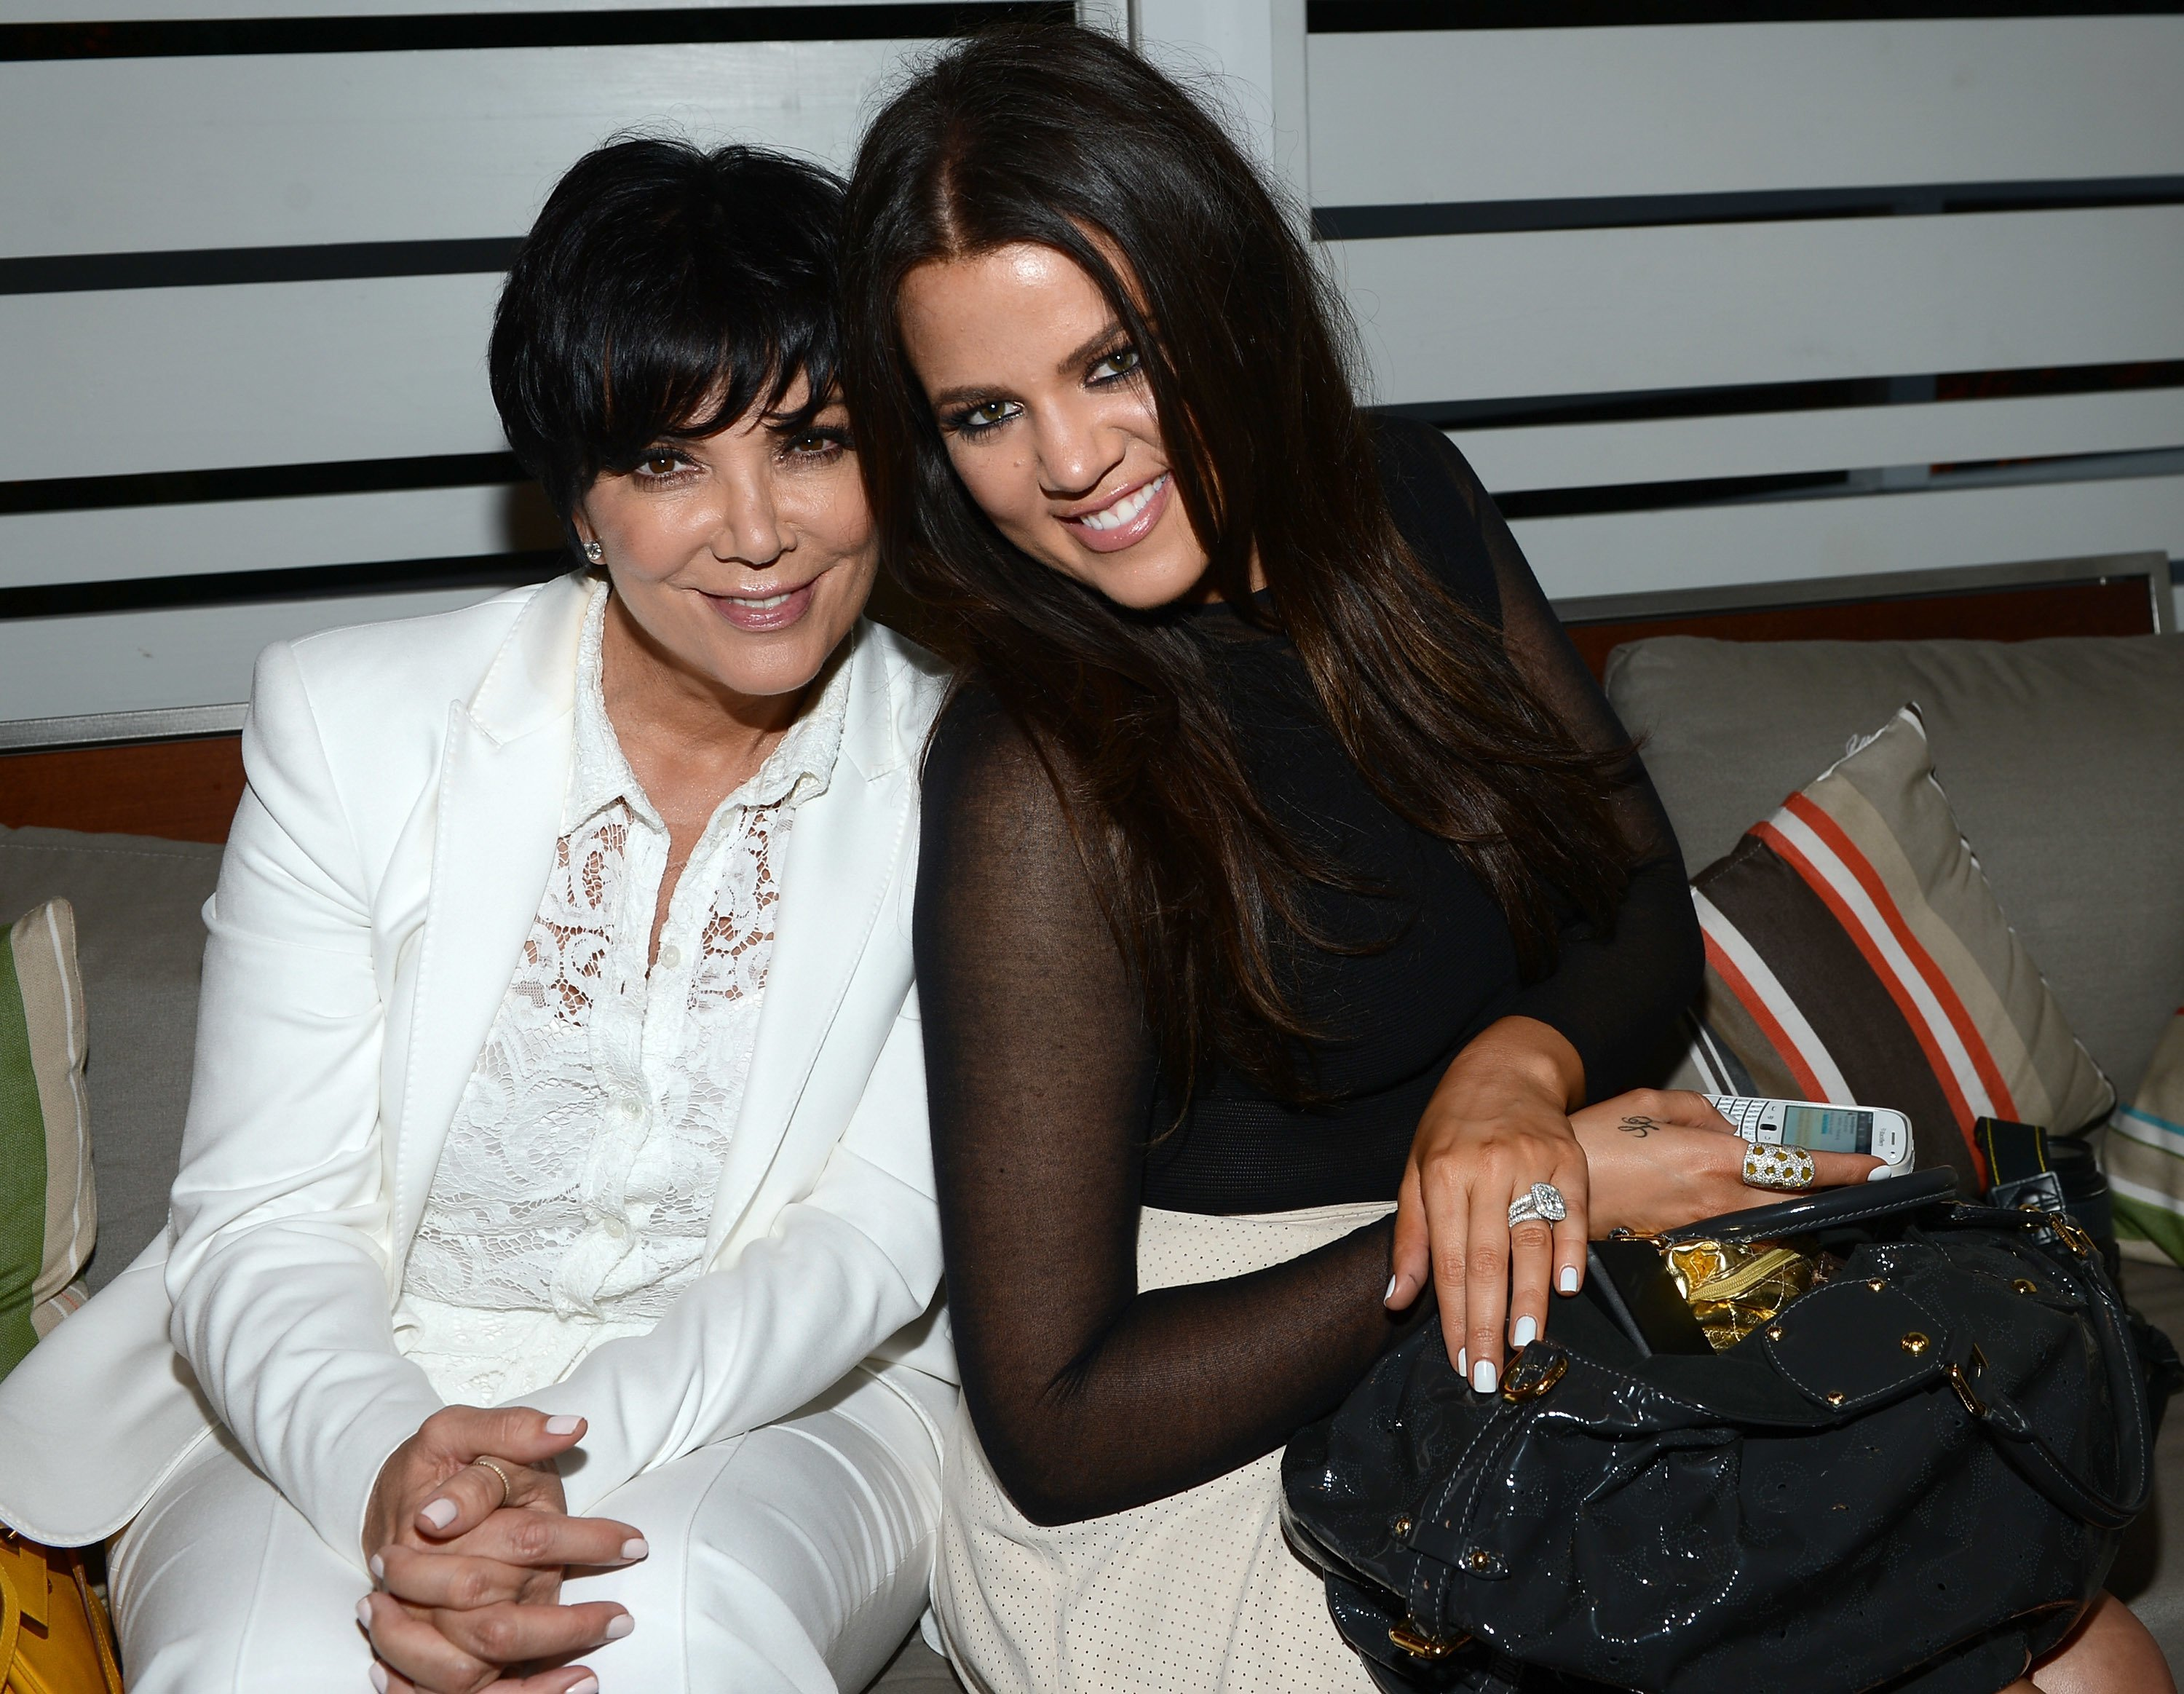 Kris Jenner and Khloe Kardashian at the 2012 Seventeen Magazine's September Issue Celebration | Source: Getty Images